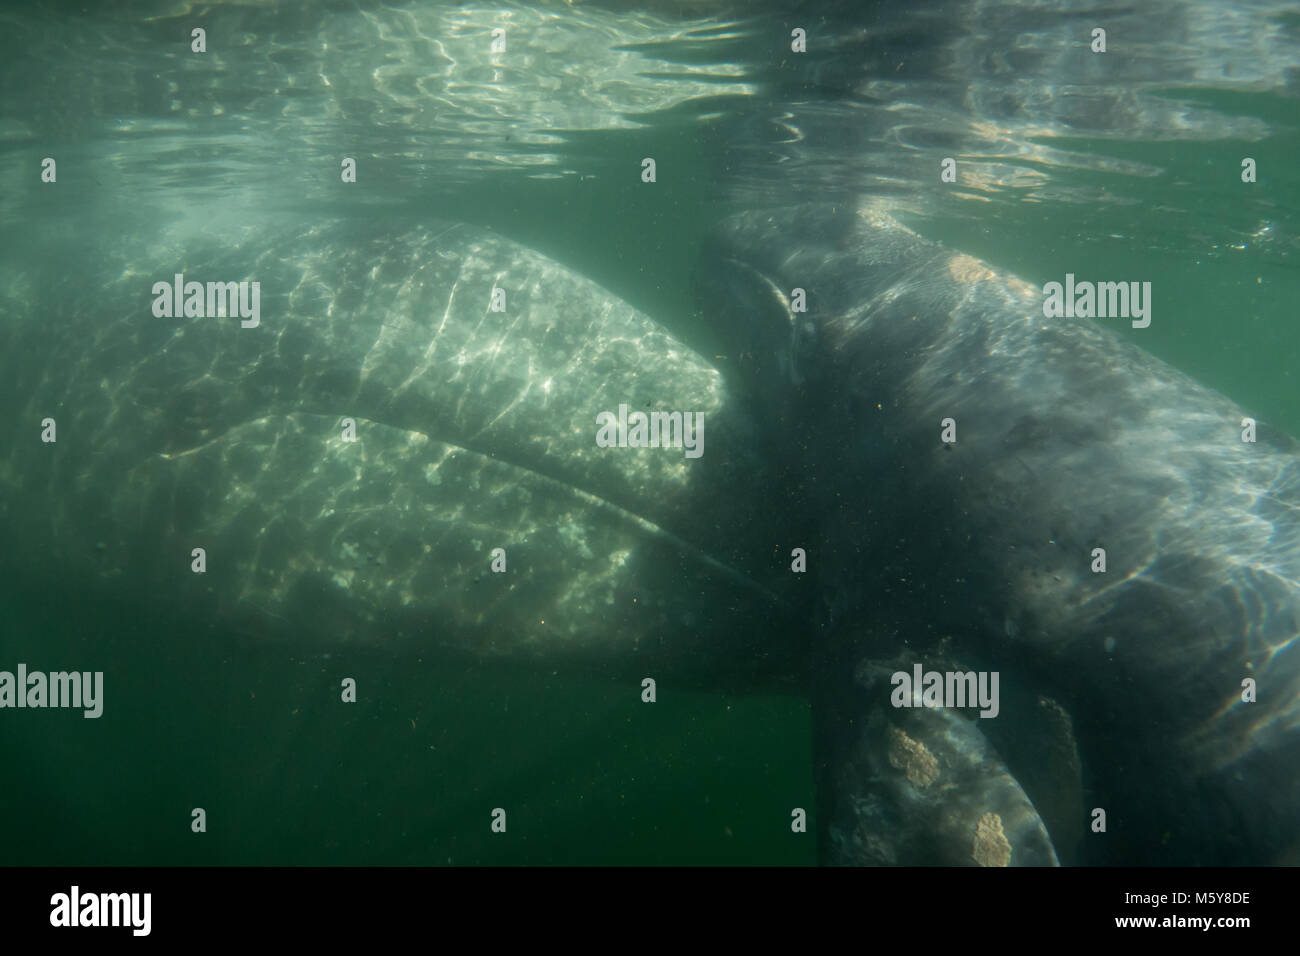 A curious gray whale approached tourists in small boats in Magdalena Bay, Baja California Sur, Mexico - Stock Image